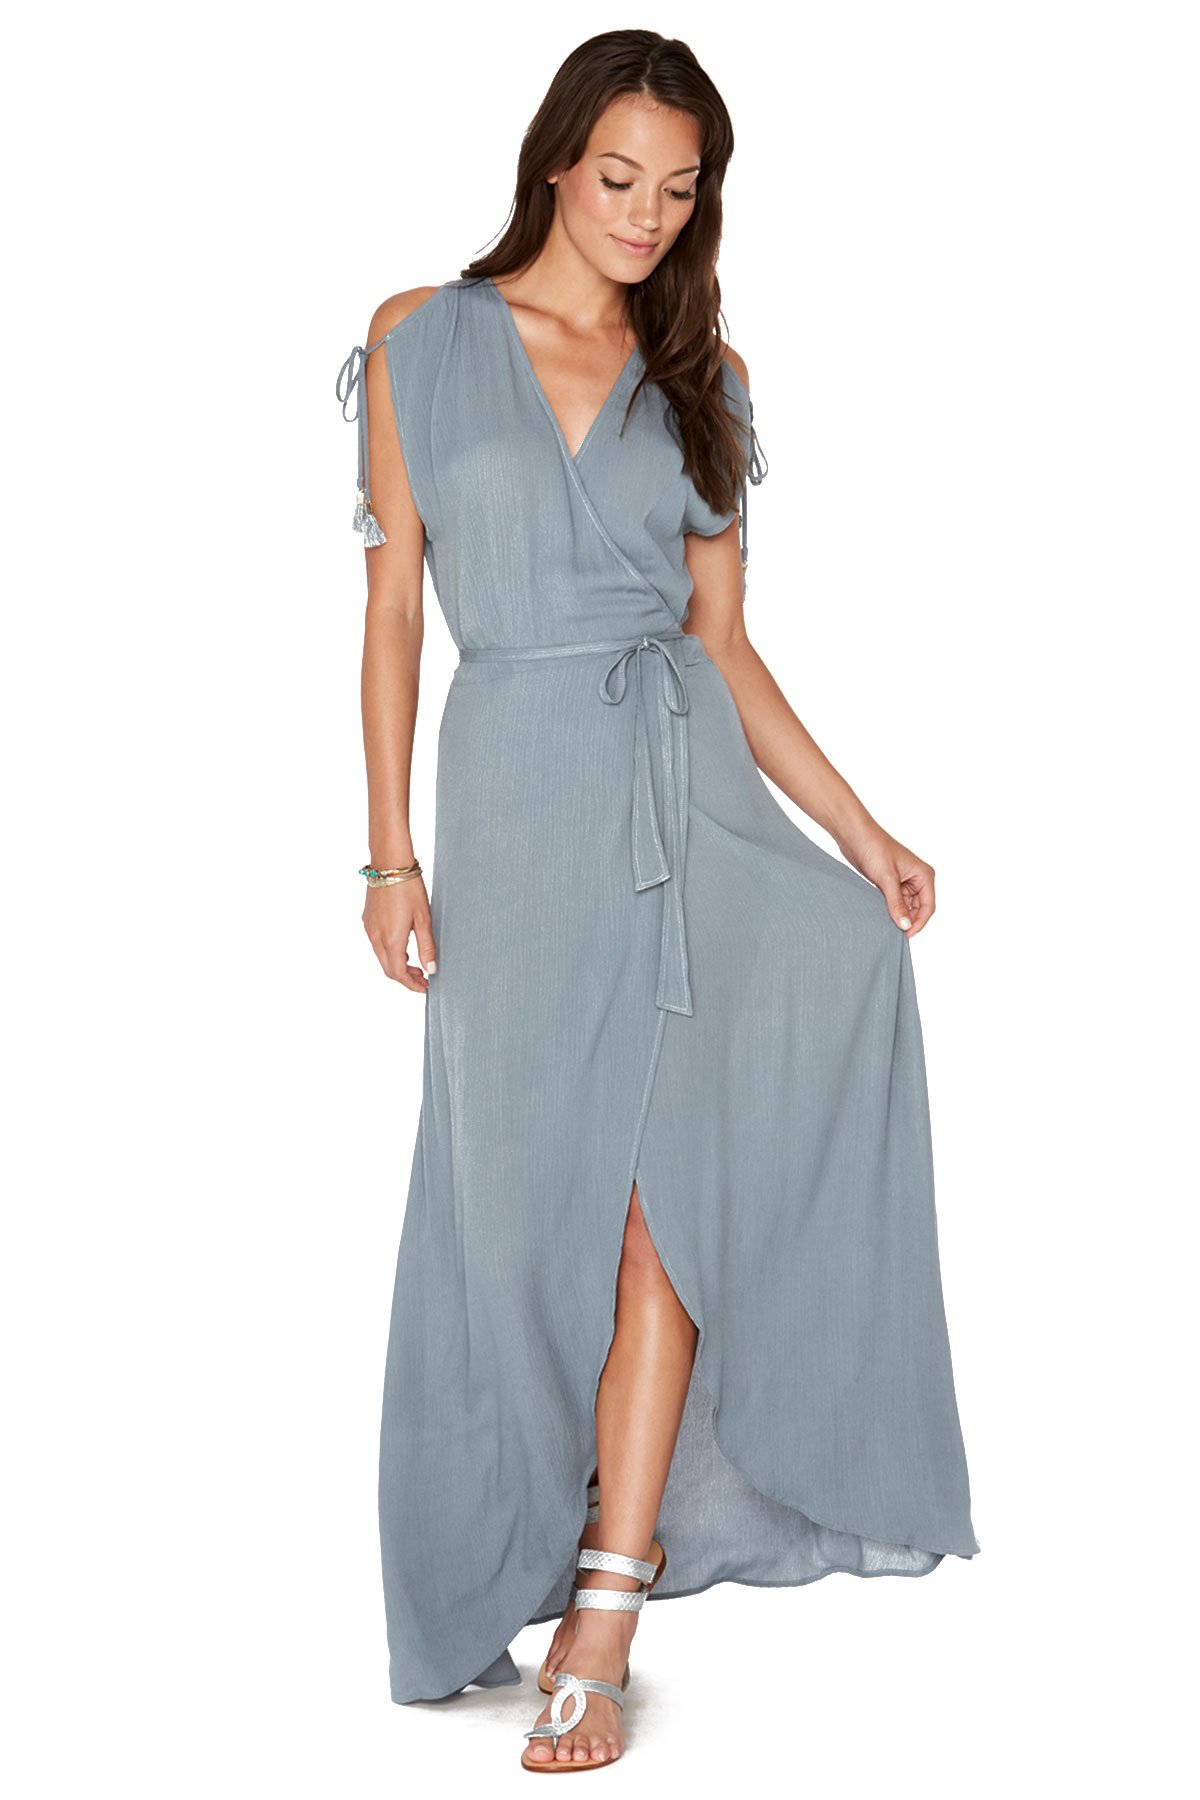 L*Space LSpace Women's Threads Maxi Dress Swim Cover Up Slated Glass S